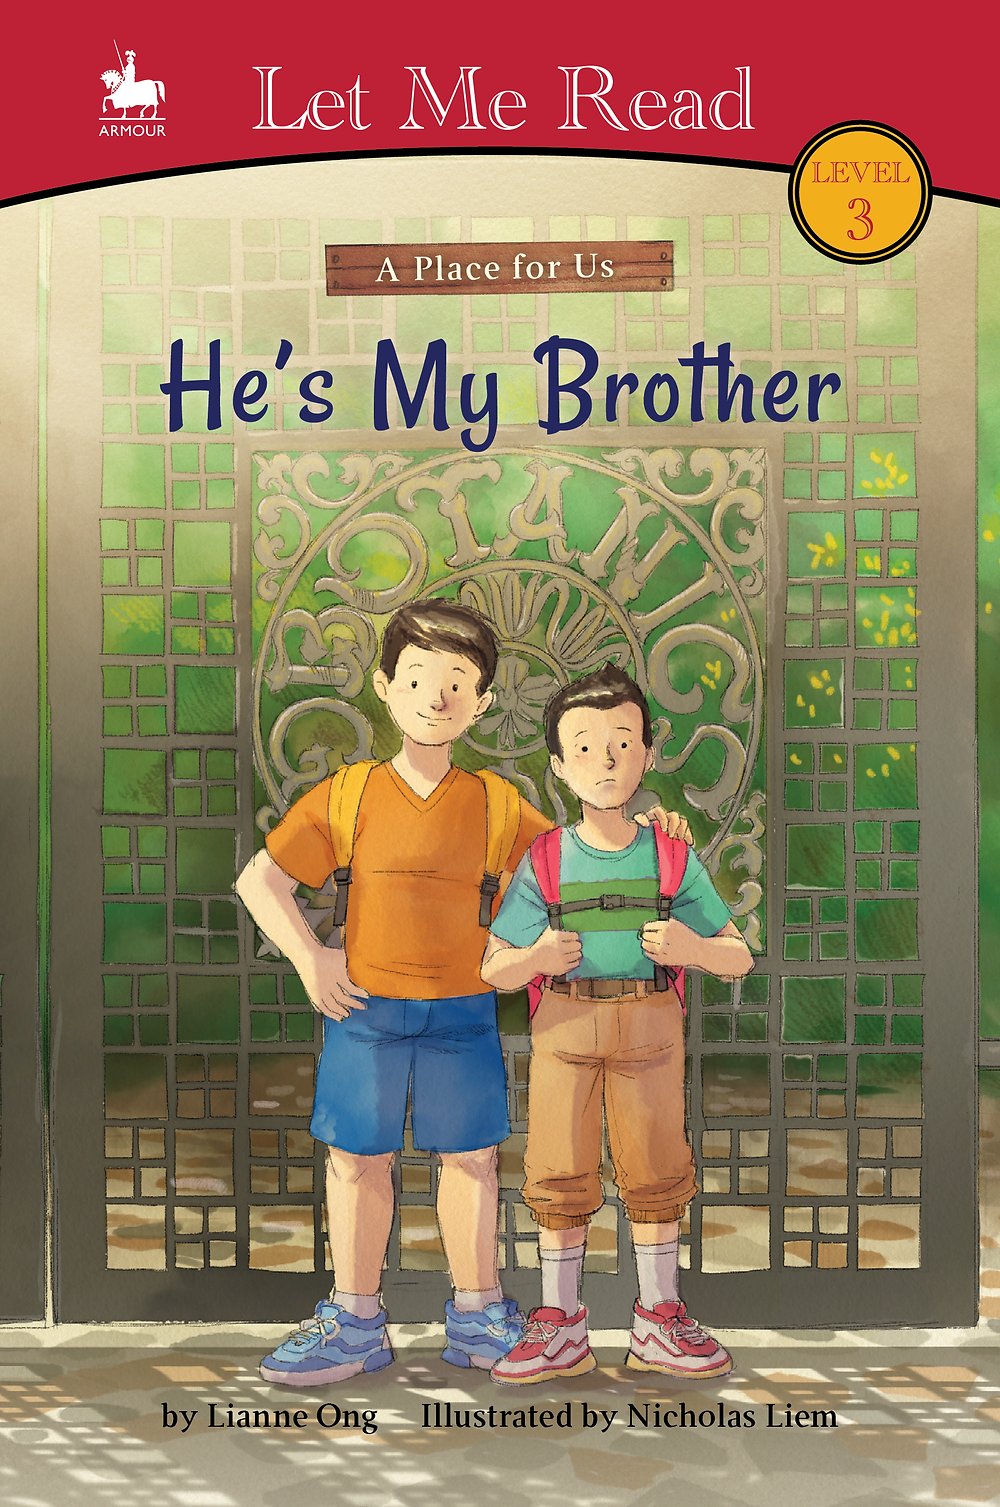 He's My Brother by Lianne Ong